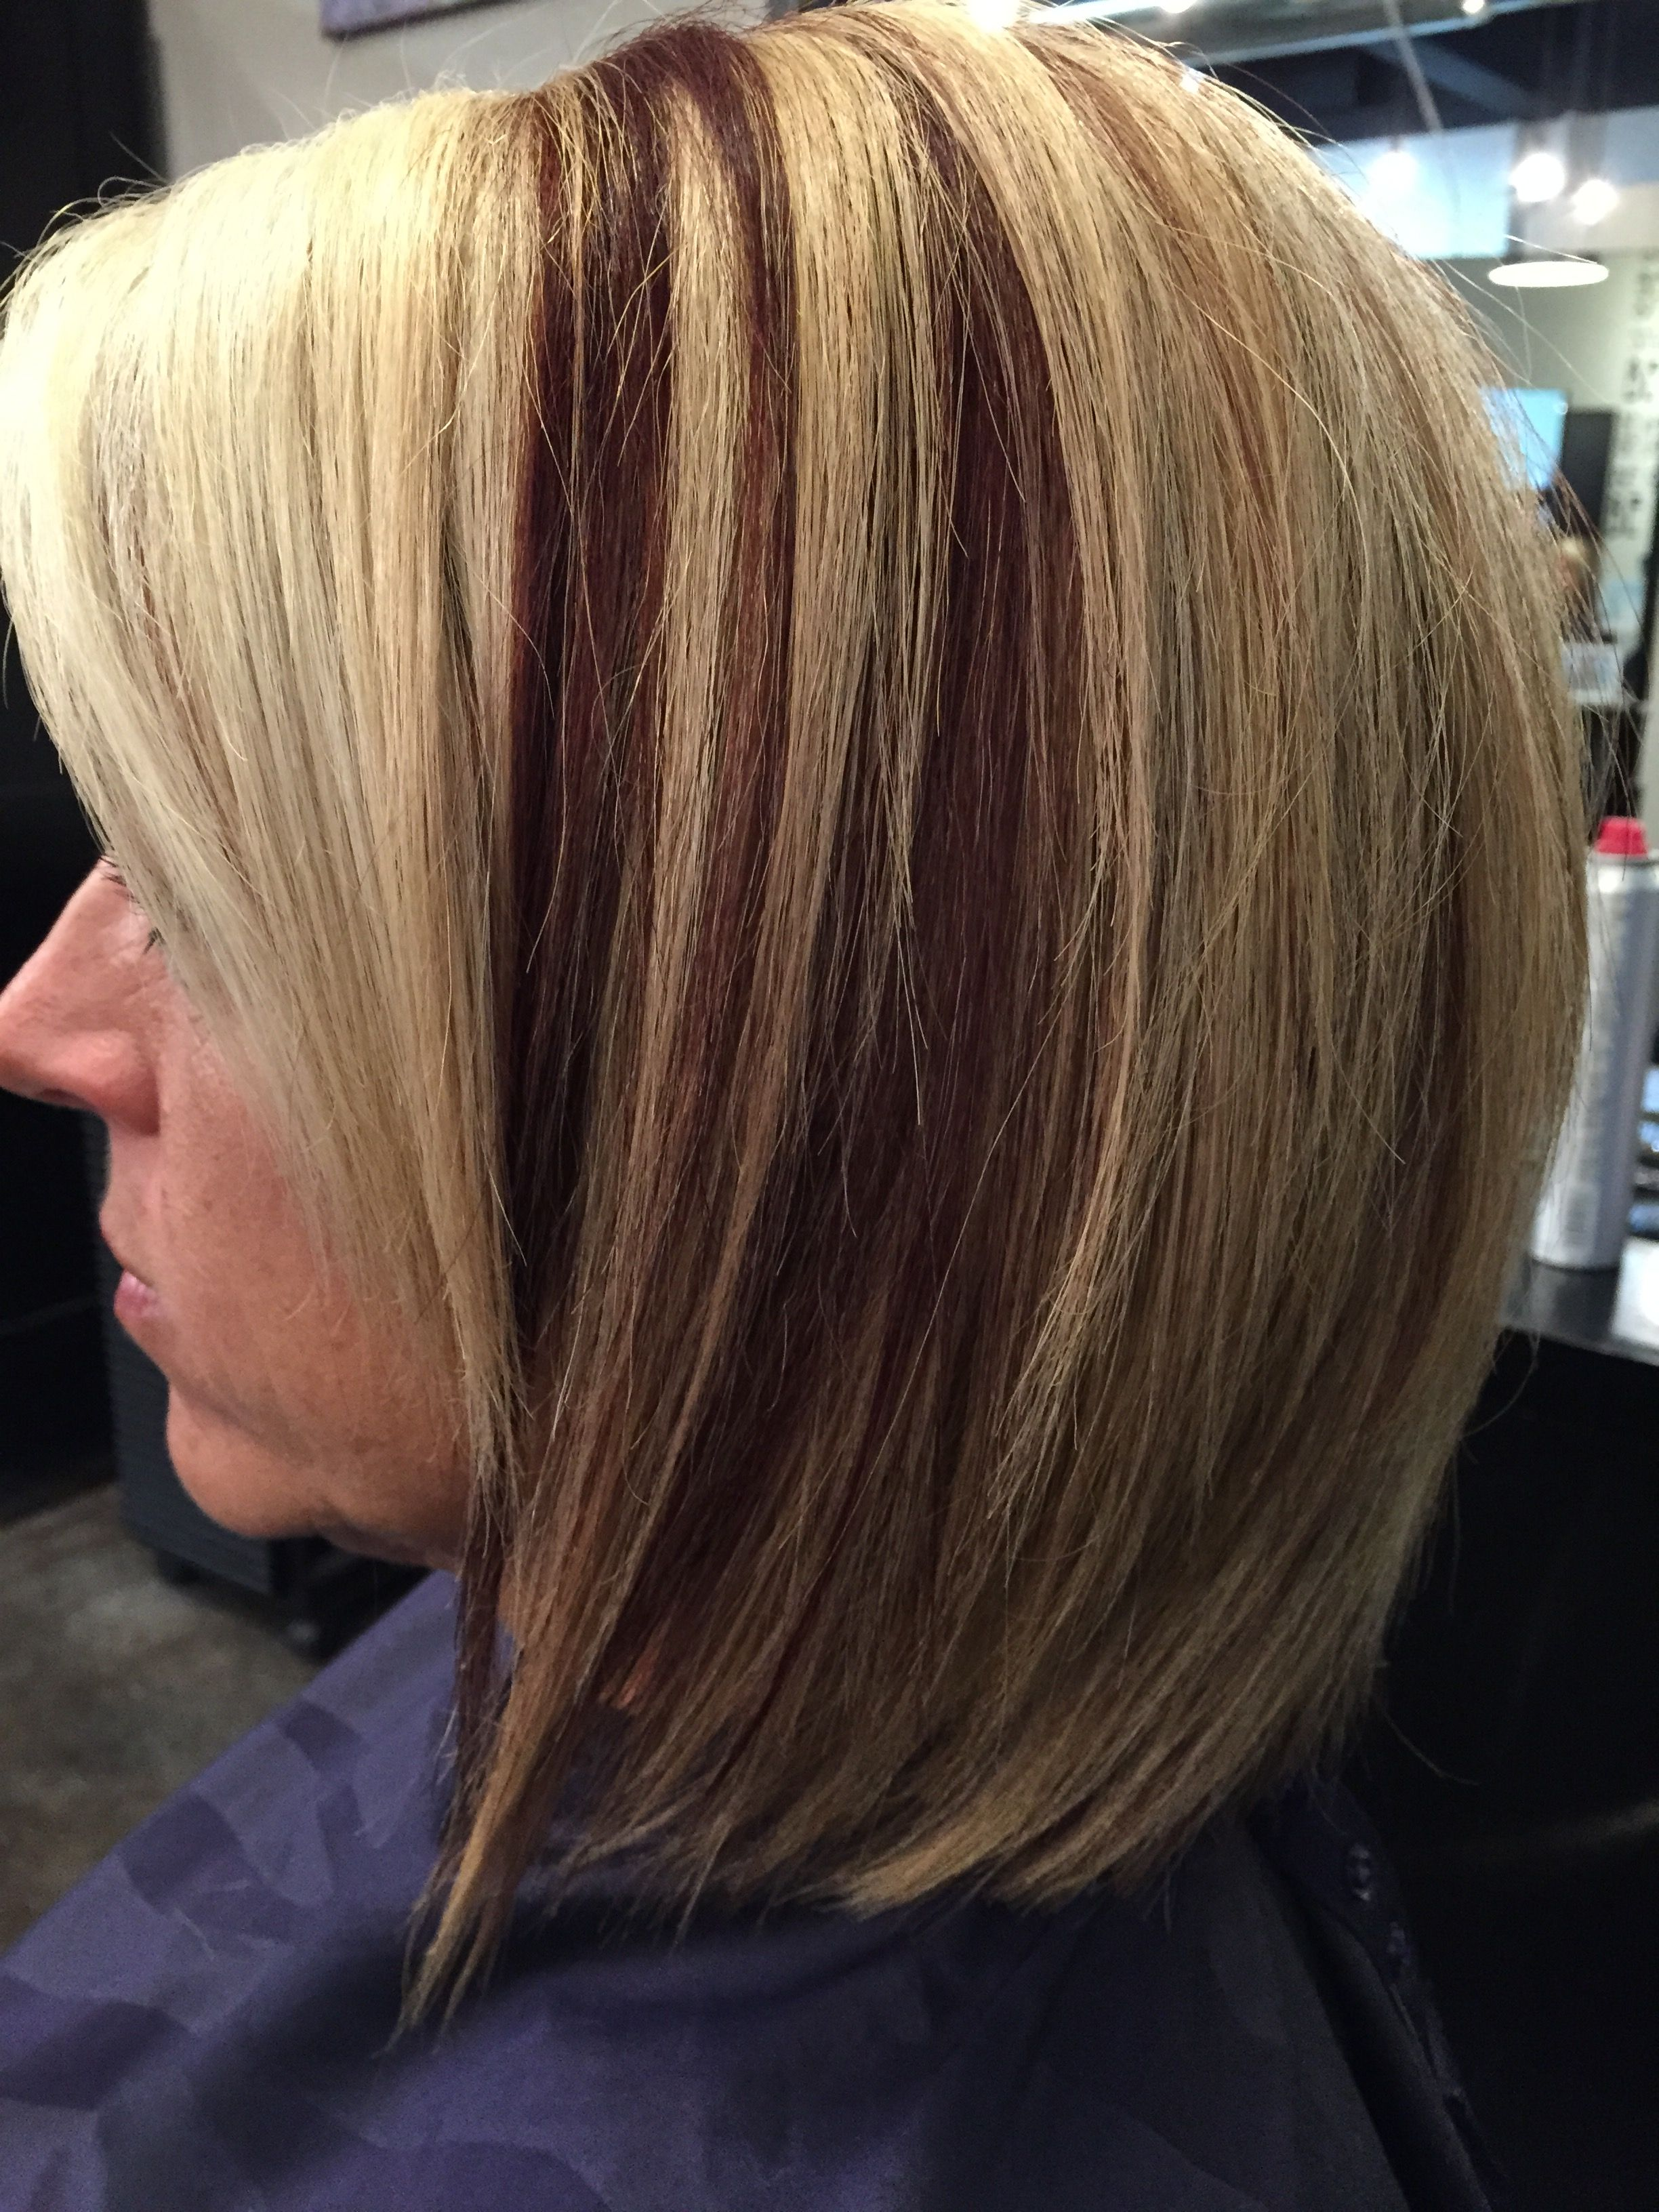 Keune Added Some Copper With Magic Bleach And Level 9 3 Hair Styles Long Hair Styles Hair Color